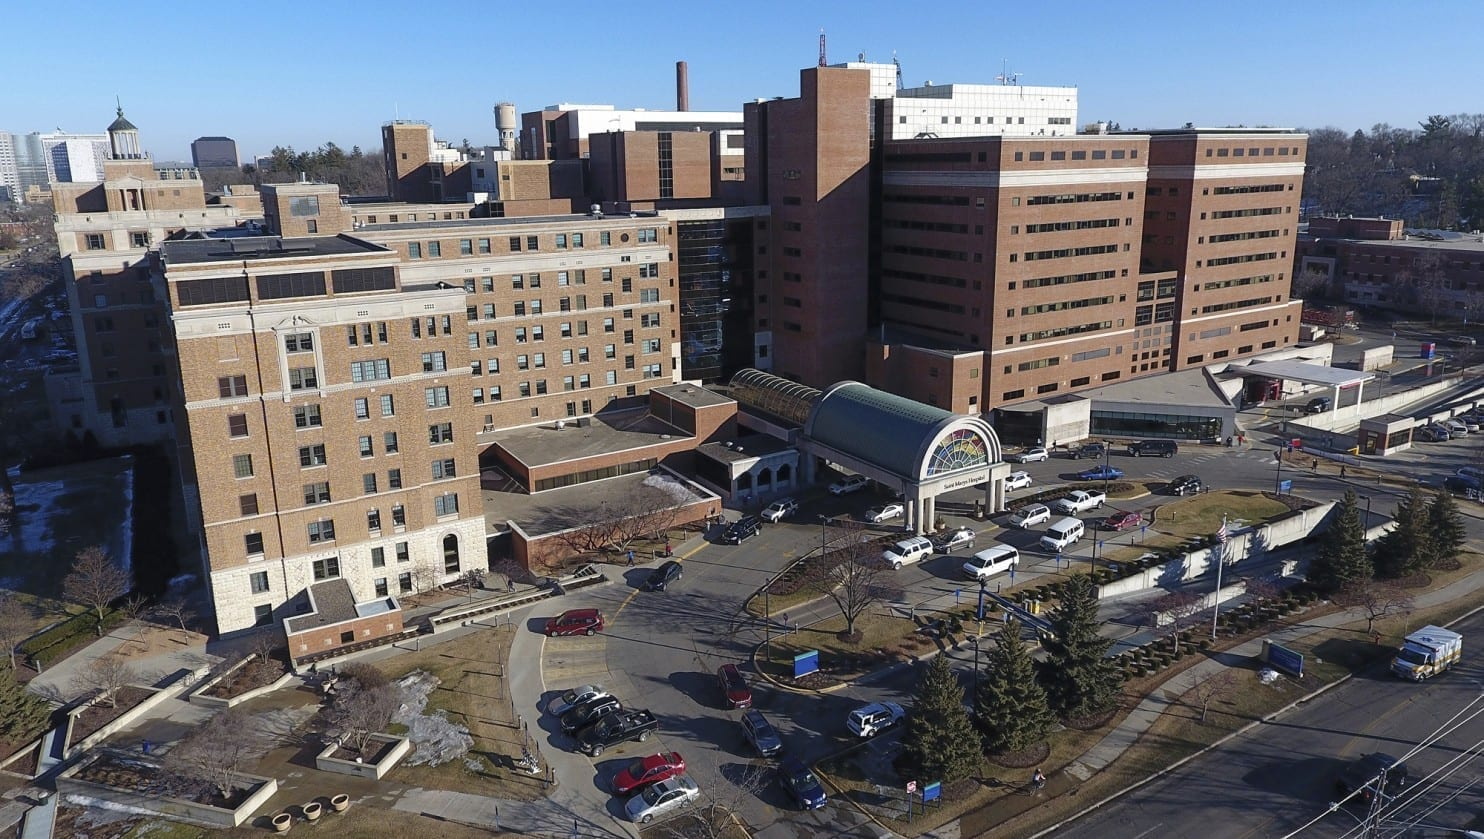 Image of the The Mayo Clinic Hospital, Saint Mary's Campus in Rochester, Minn.